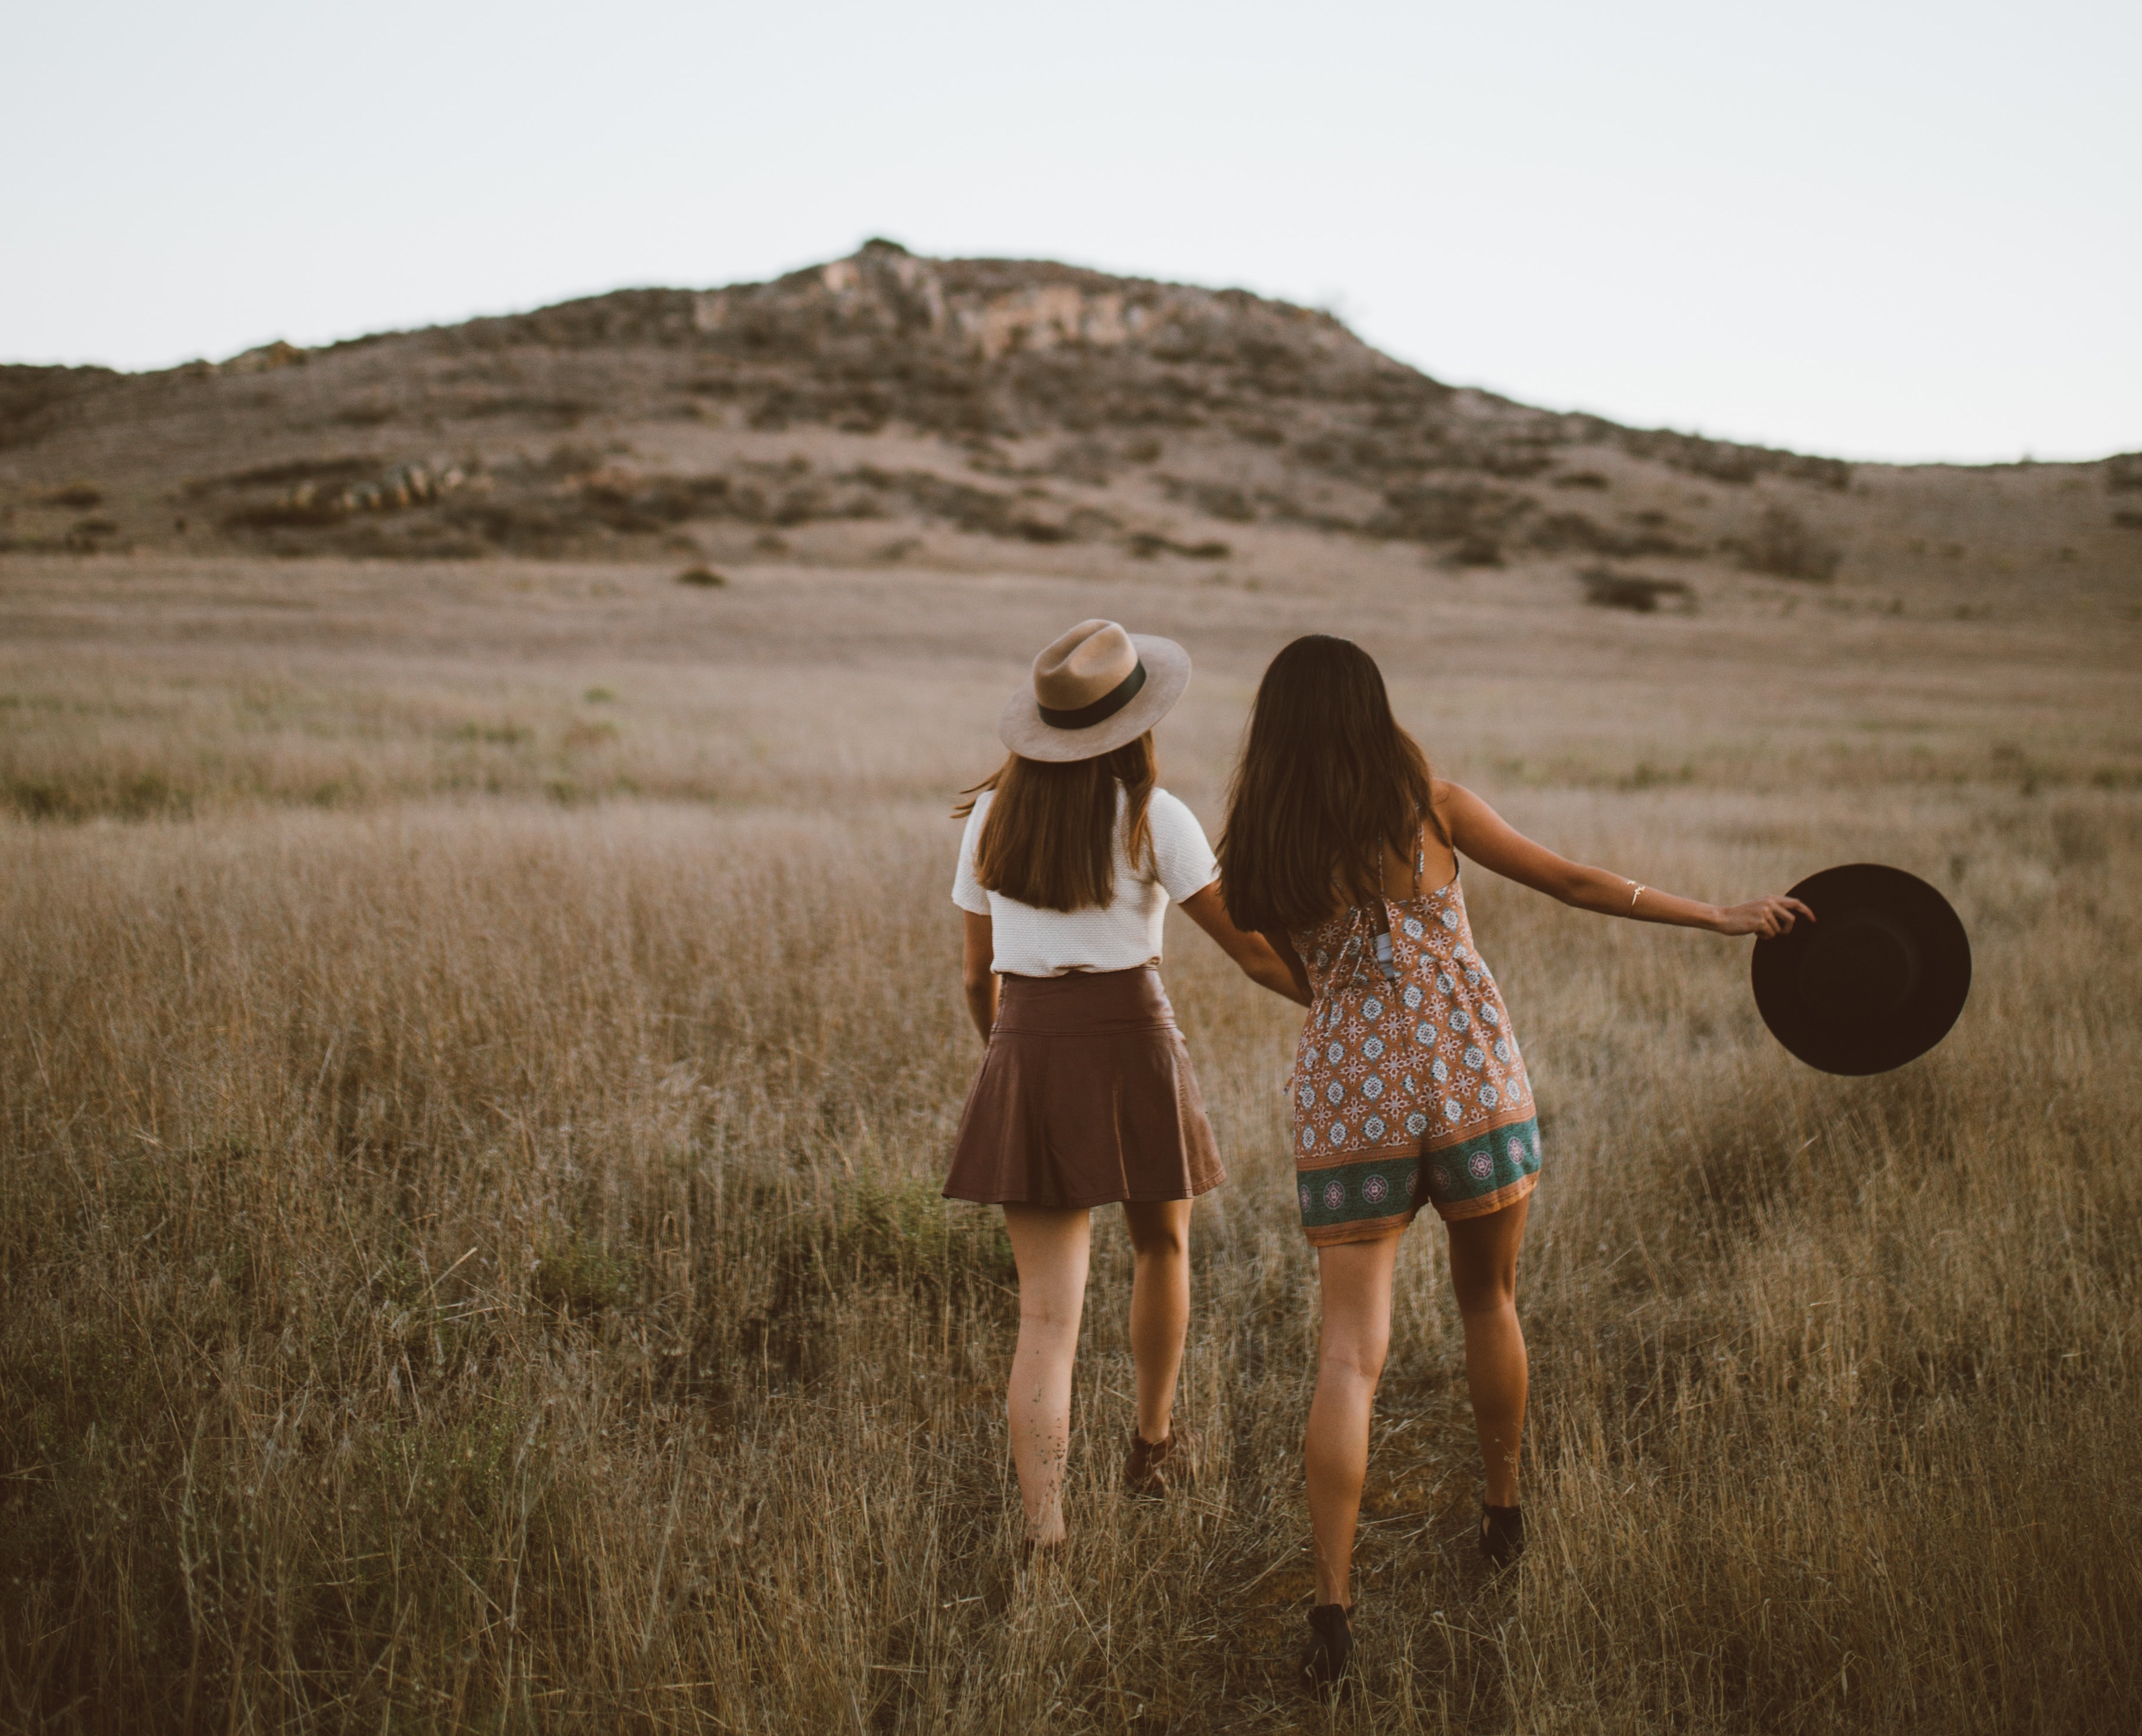 Two friends holding hands together in a field